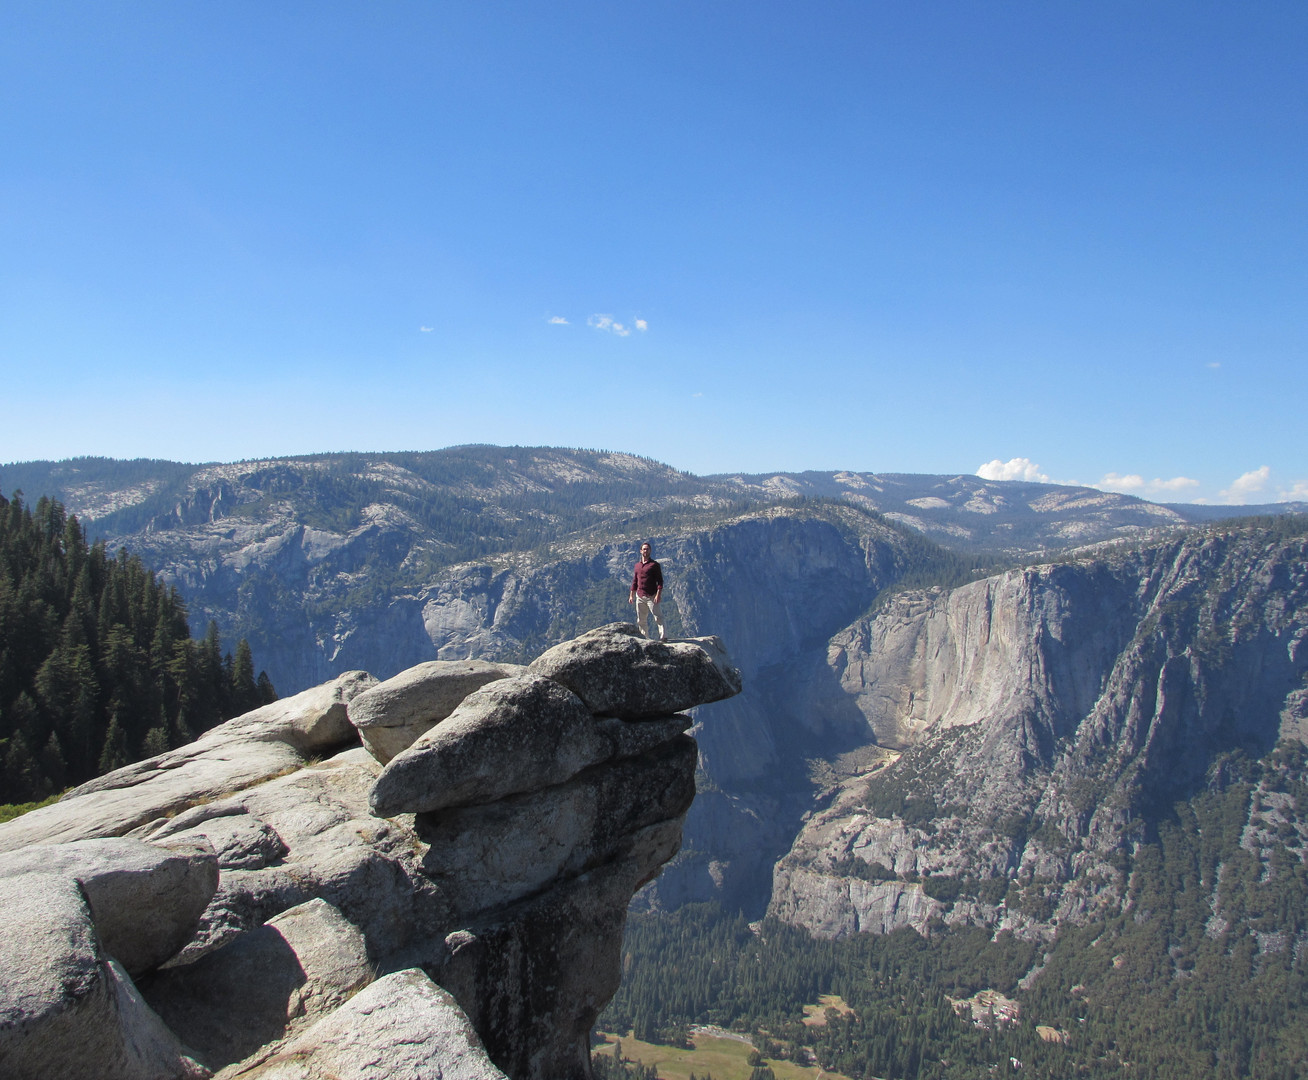 Yosemite National Park, Glacier Point (2014)